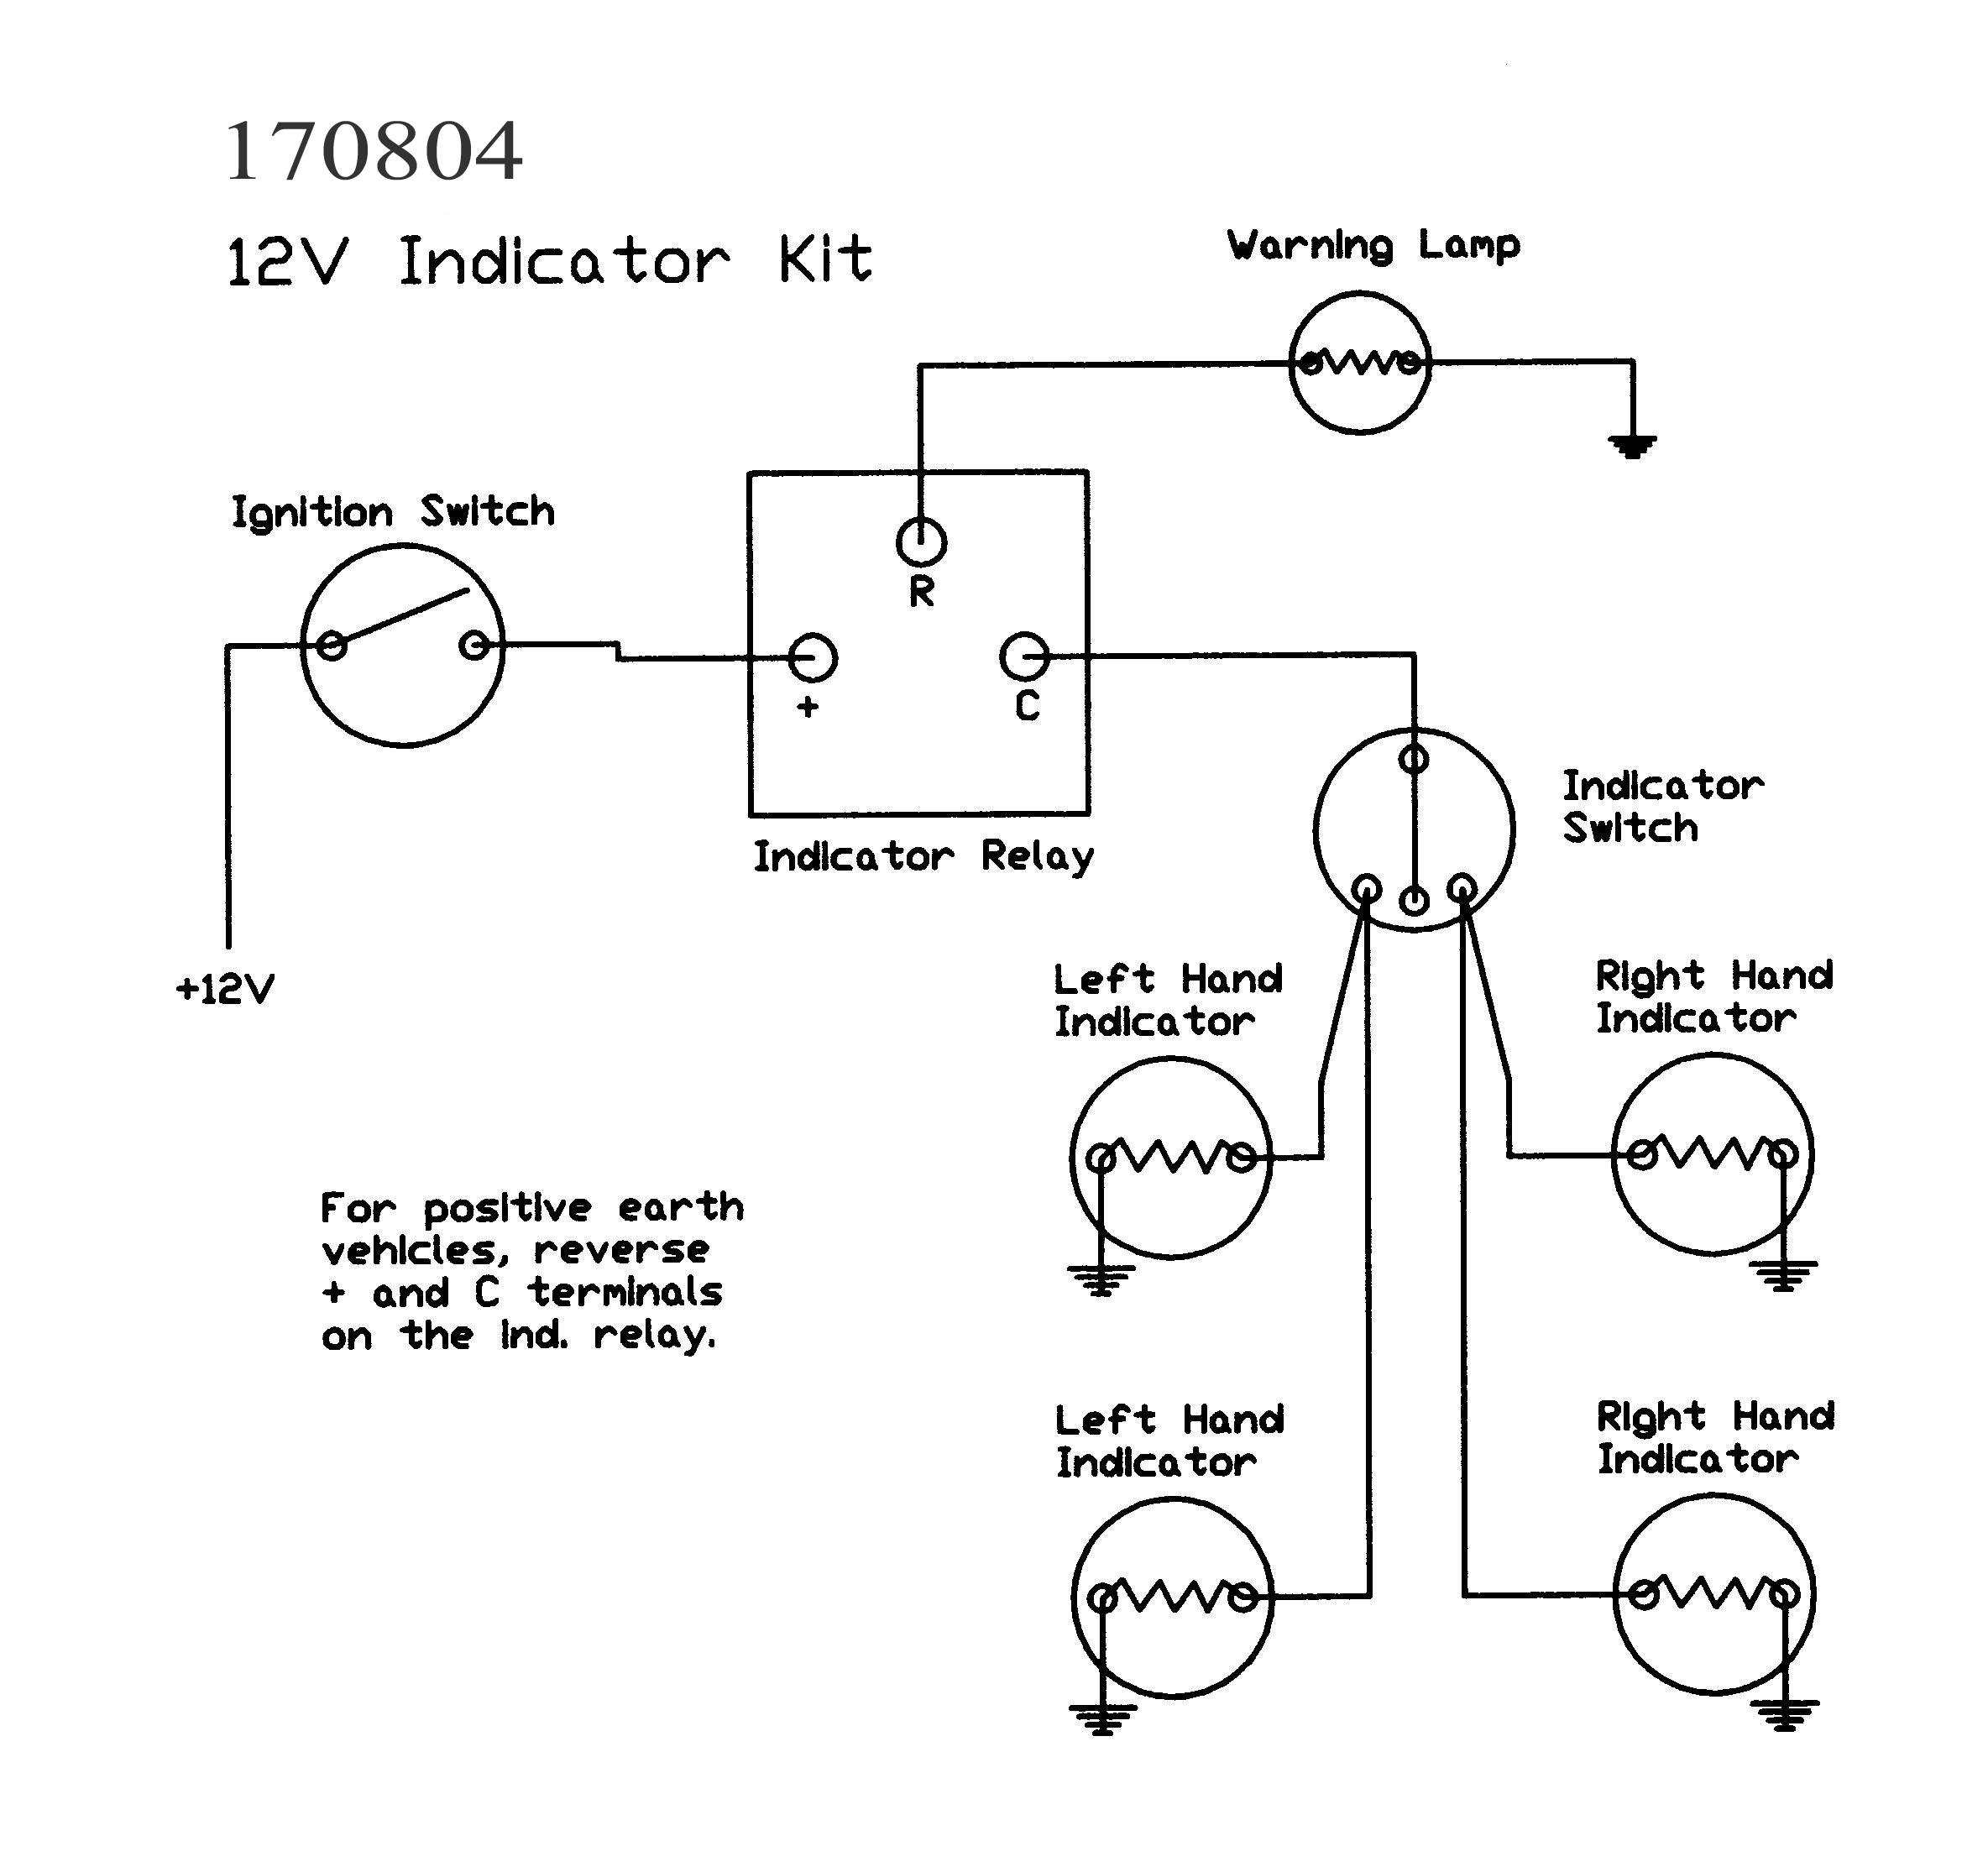 170804_(12v)_schematic?resize=665%2C625&ssl=1 flasher wiring diagram the best wiring diagram 2017 flasher unit wiring diagram at couponss.co